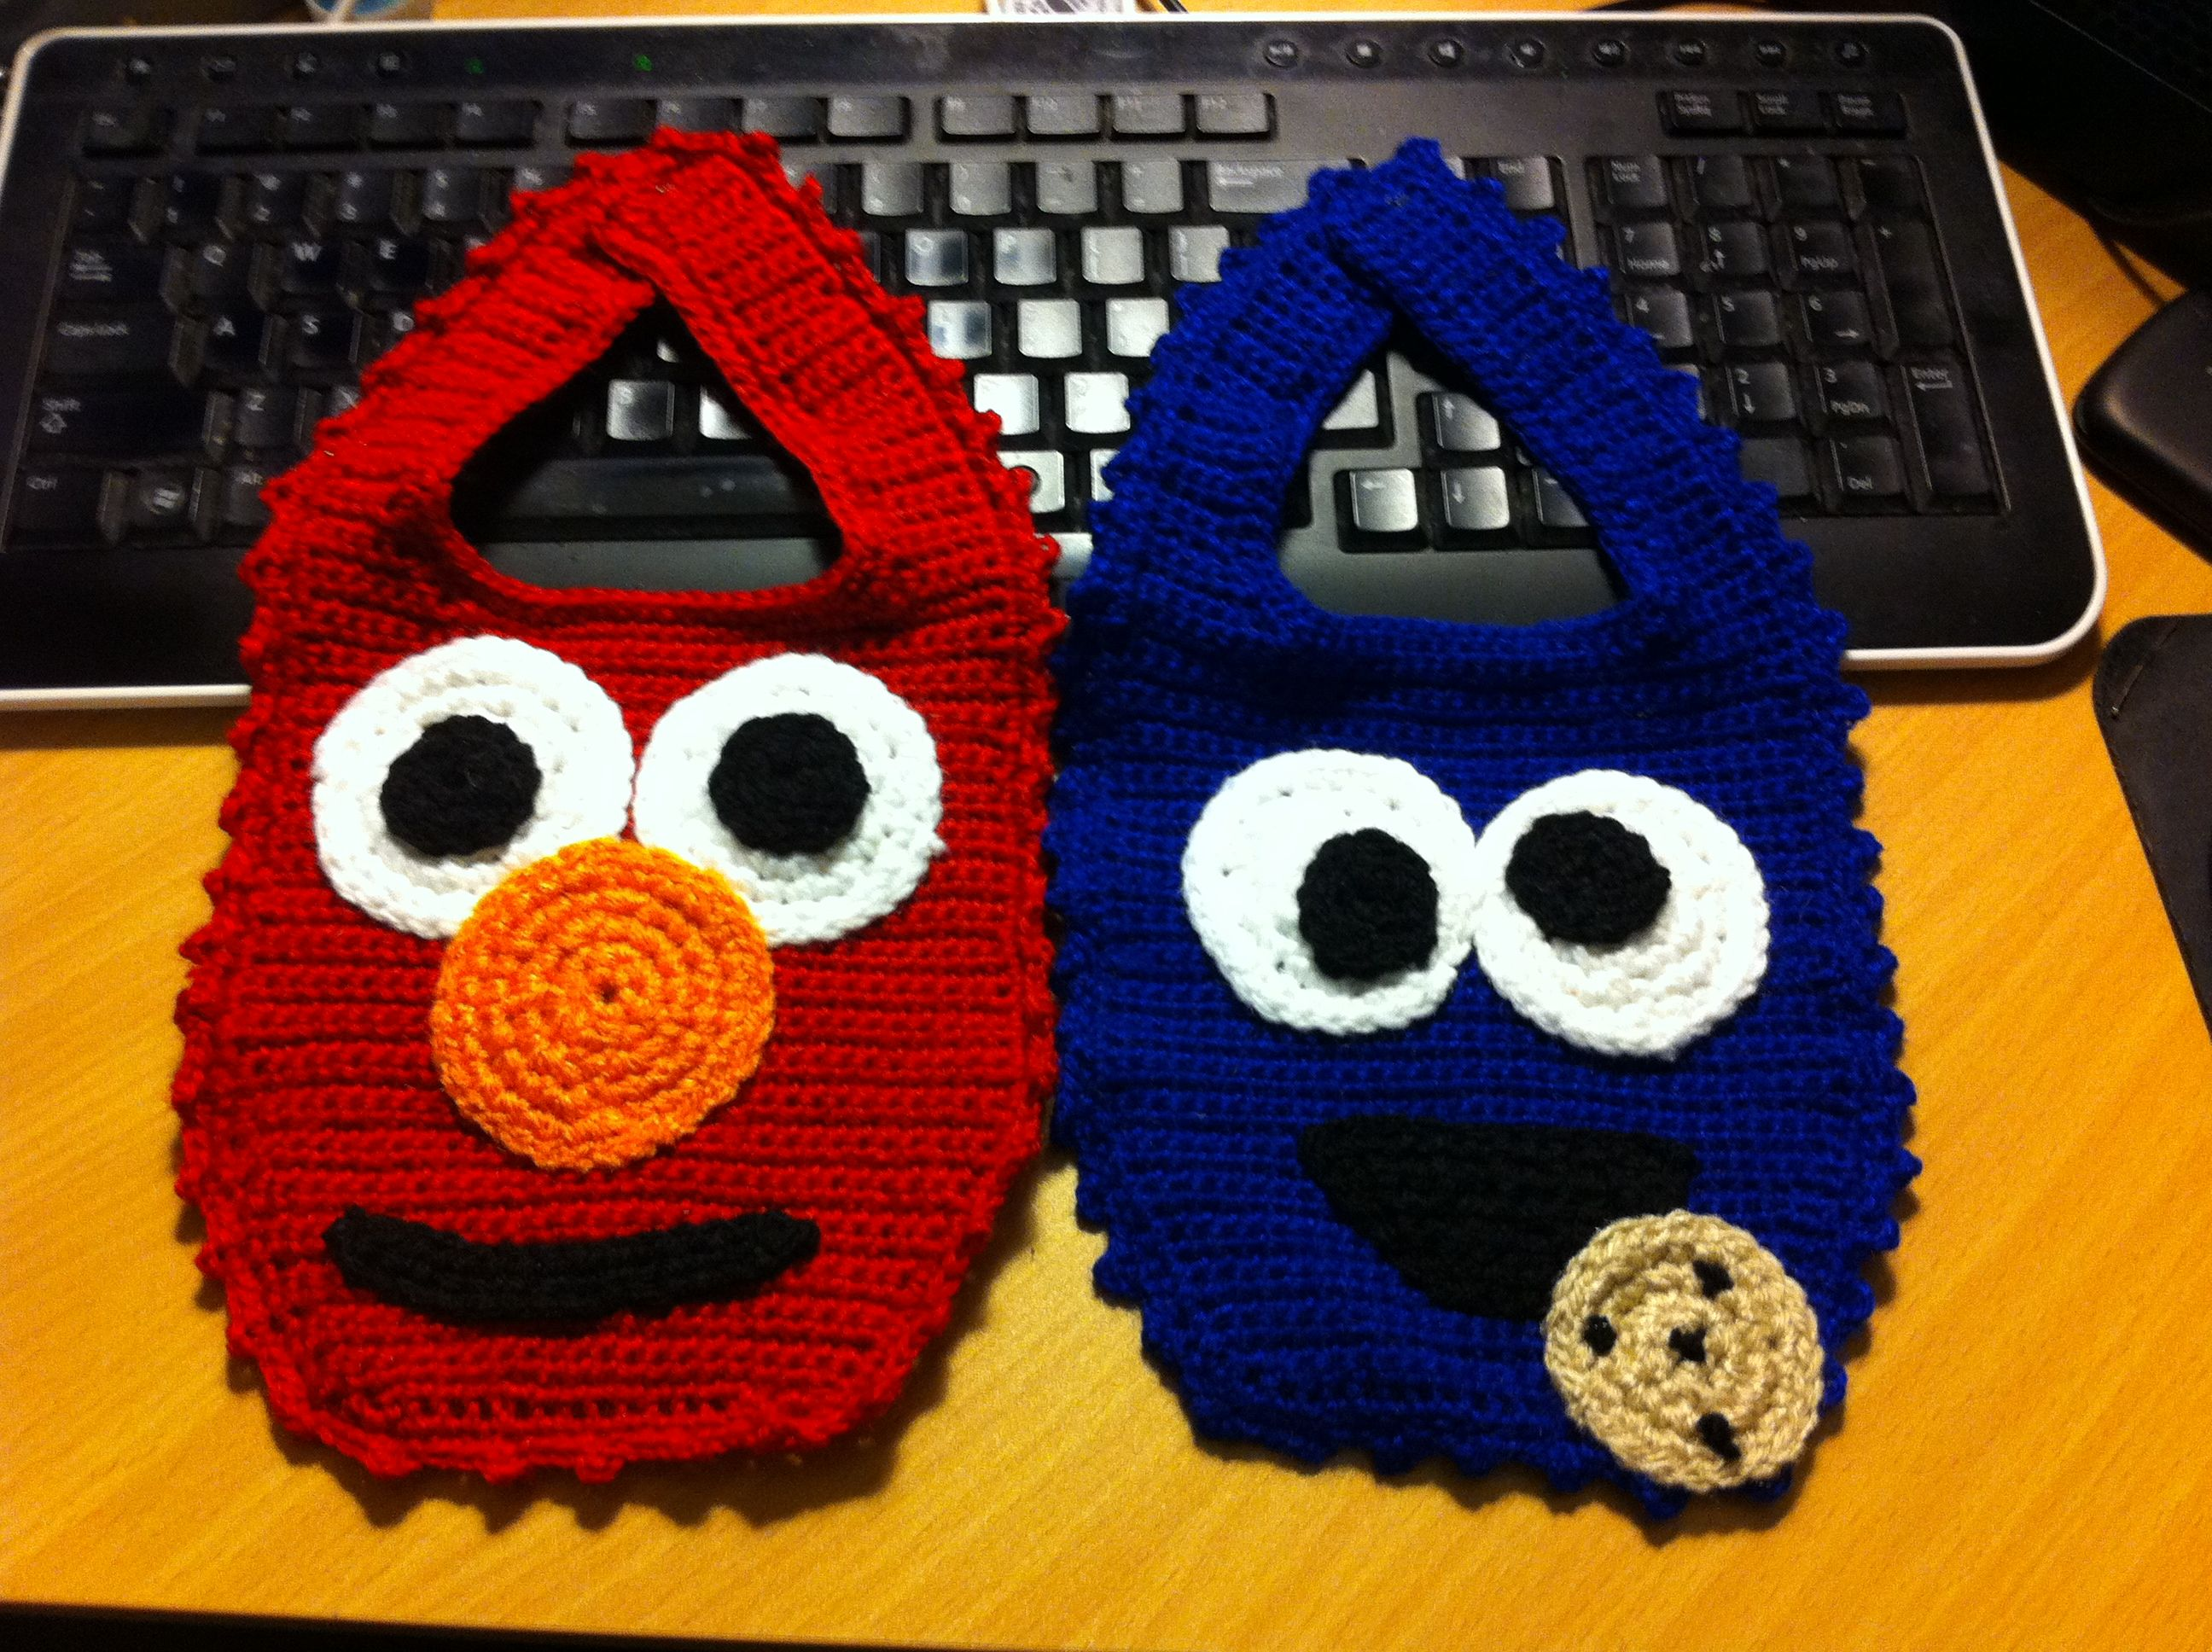 Elmo and cookie monster baby bibskimberly davis pinteres elmo and cookie monster baby bibskimberly davis pattern is for basic bib one of previous pinners added extras to make it elmo cookie monster free bankloansurffo Gallery